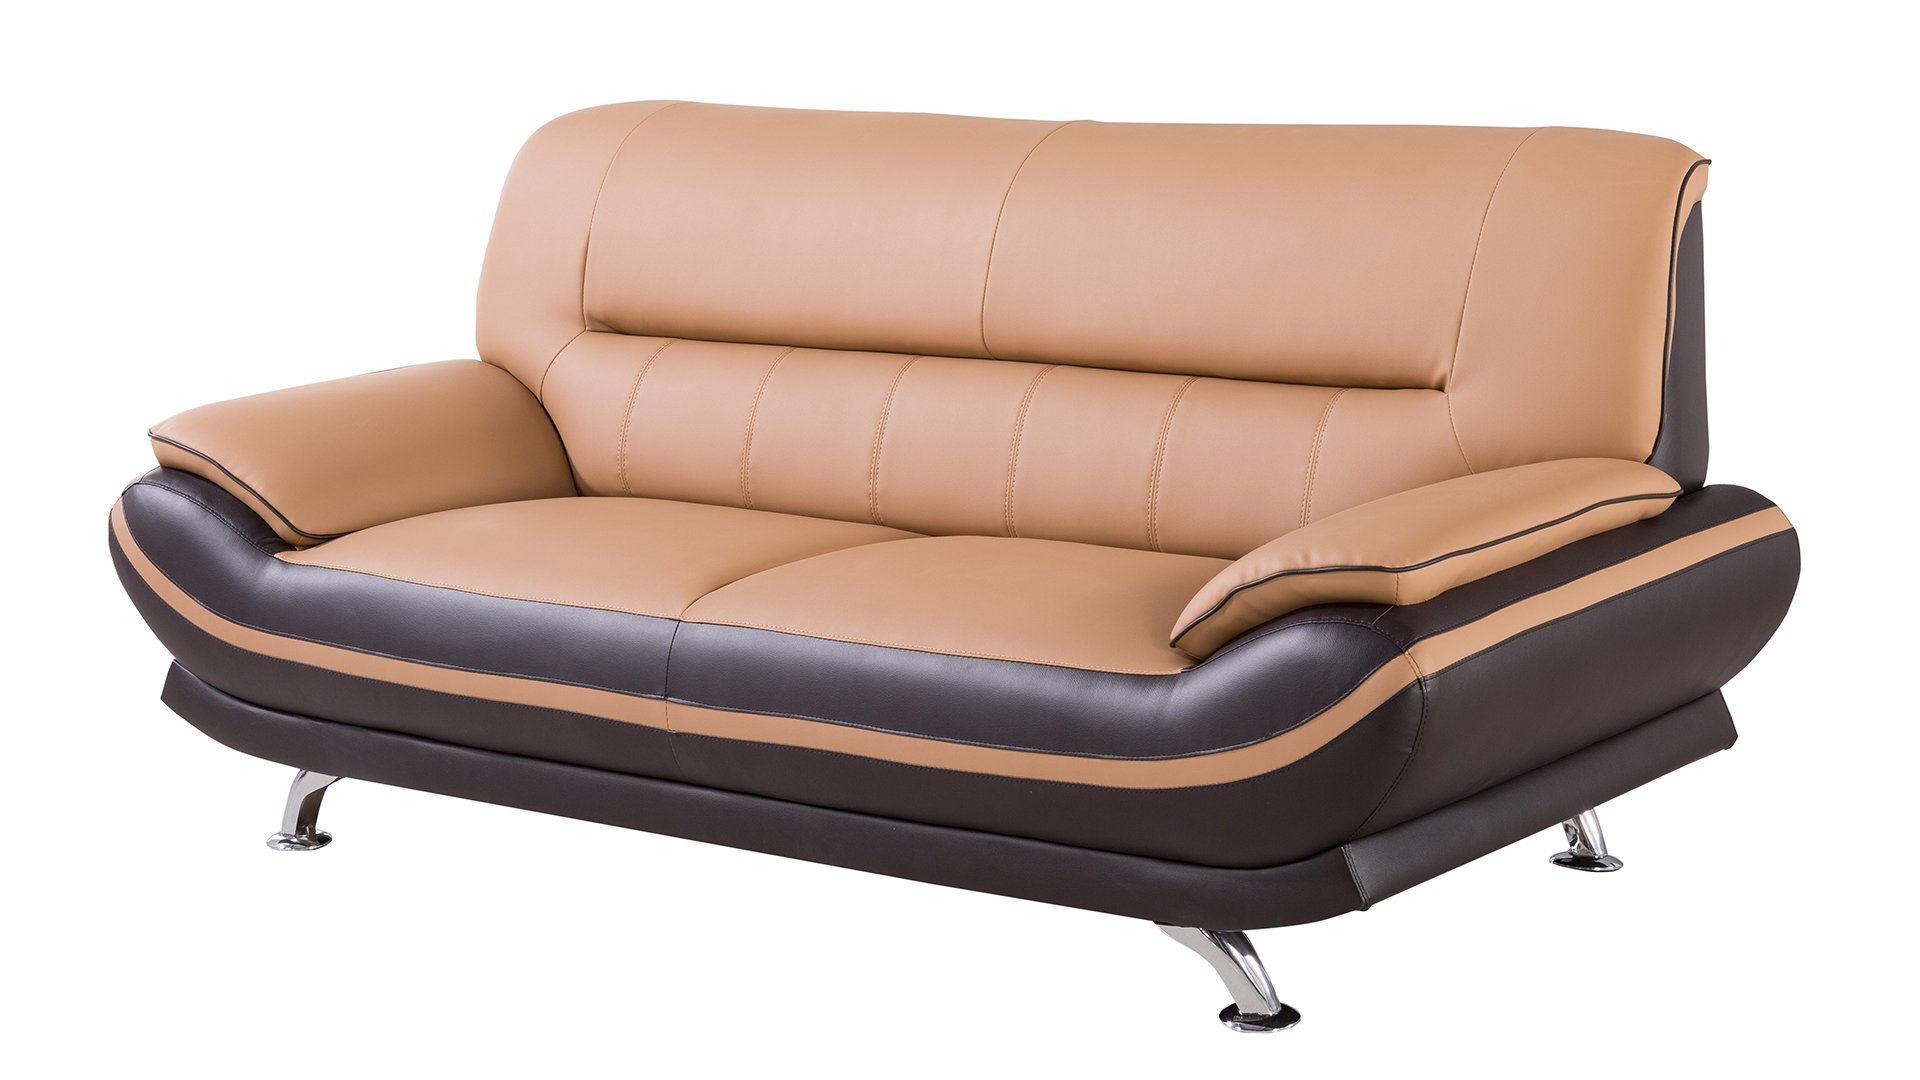 American Eagle Furniture Upholstered Leather Sofa with Added Base Support and Pillow Top Armrests, Yellow/Brown